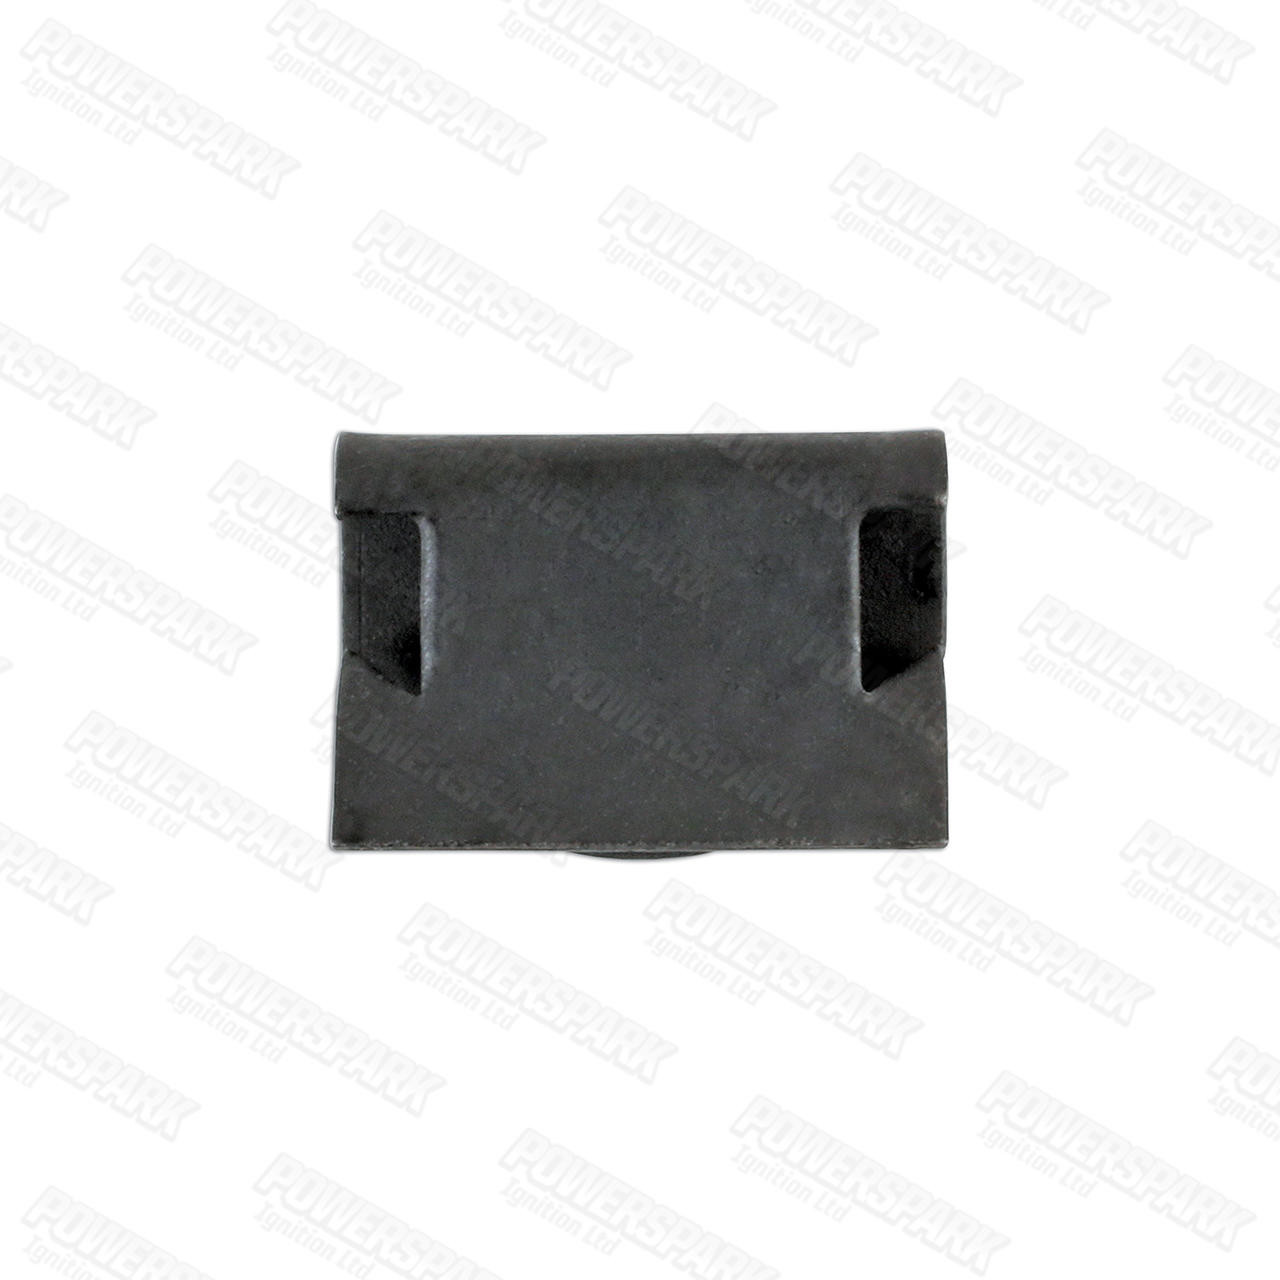 Laser Classic MG D Type Edge Clip 1.6mm Pack of 25